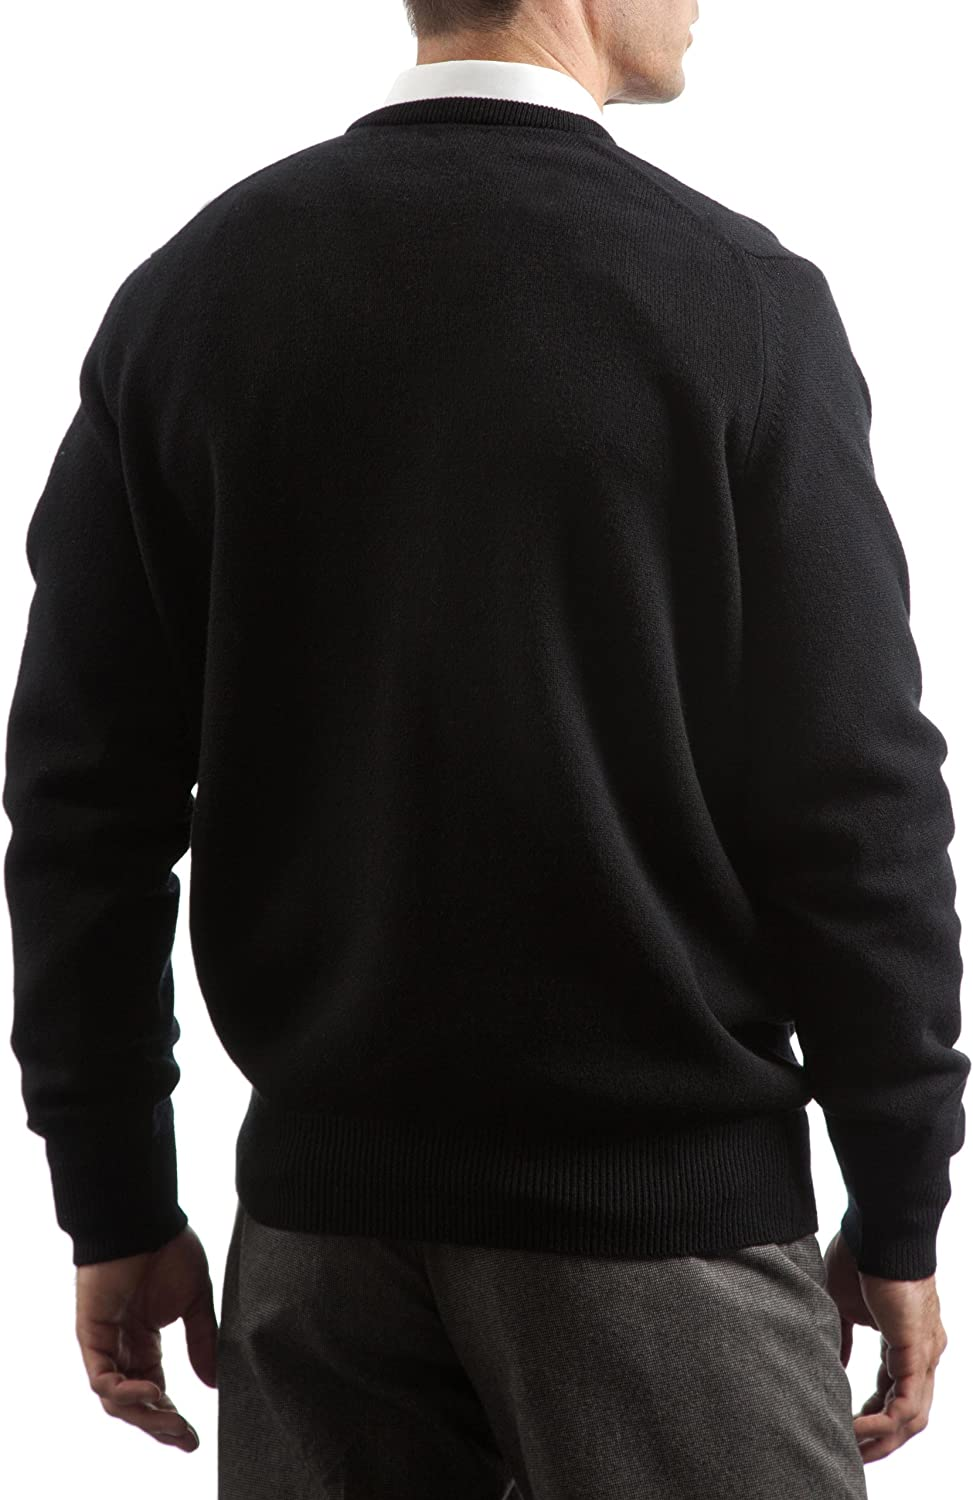 Made in Scotland Great /& British Knitwear Mens HM100 100/% Lambswool Plain V Neck Jumper